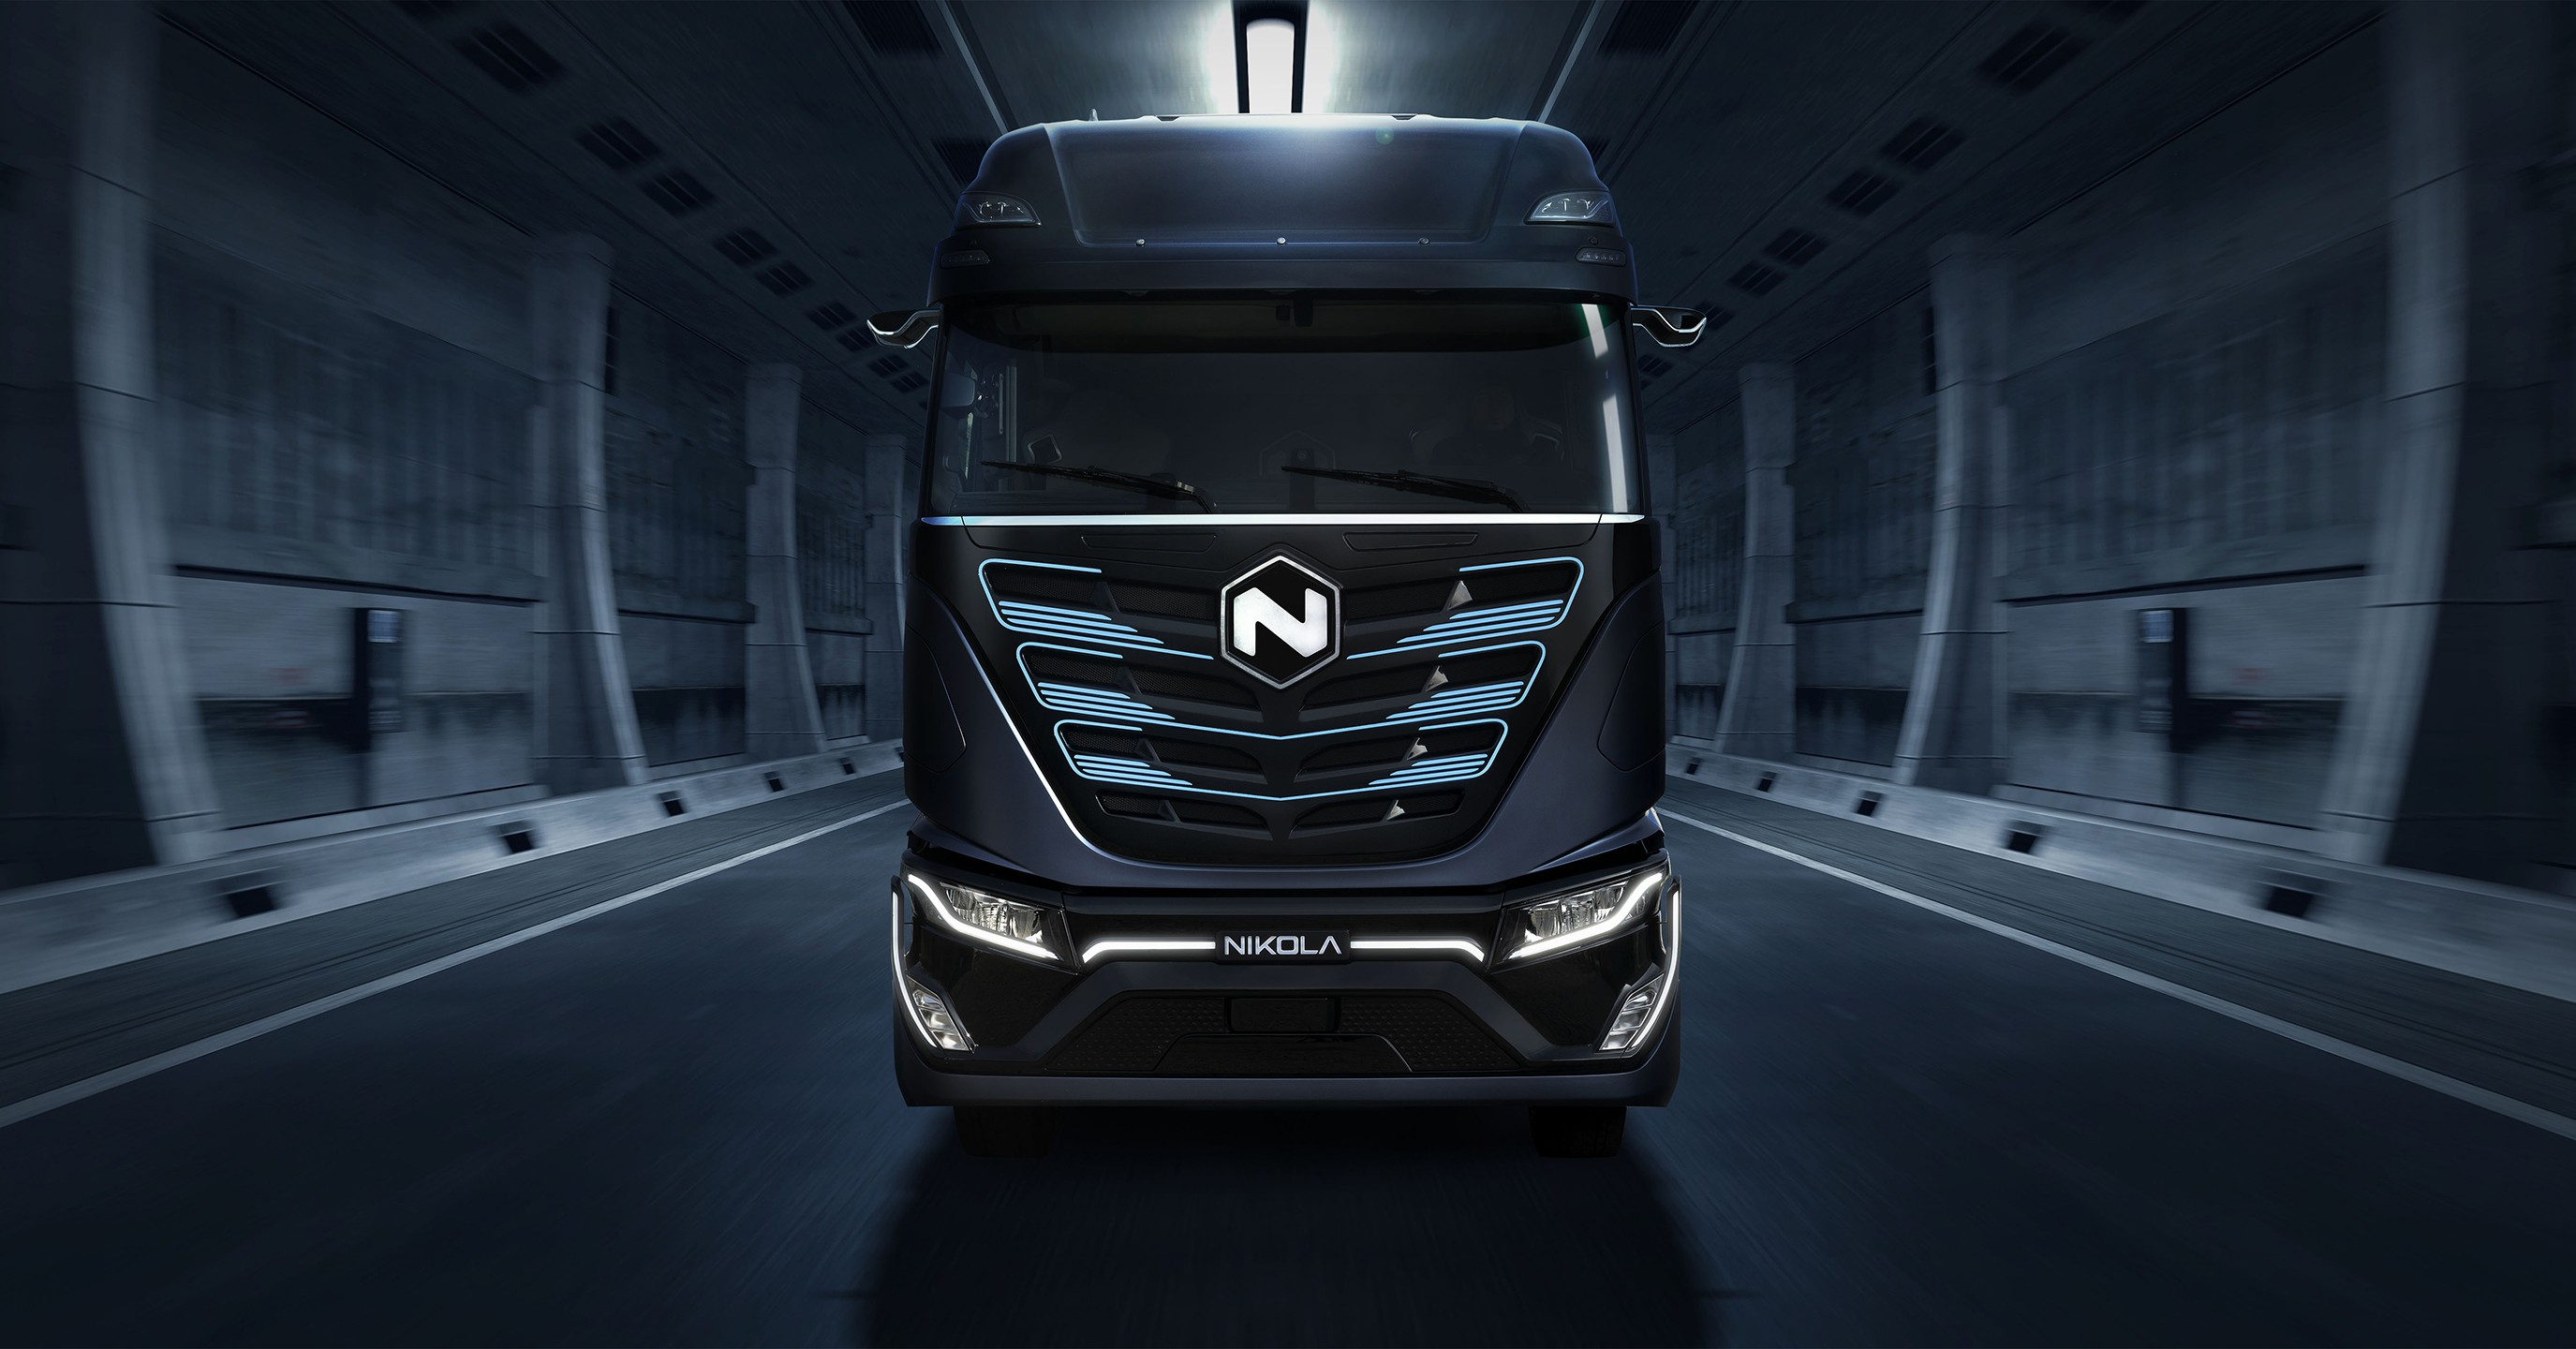 [Inclassable] Le topic des camions - Page 7 1000-hp-nikola-electric-trucks-to-move-trash-around-the-us-from-2023_7